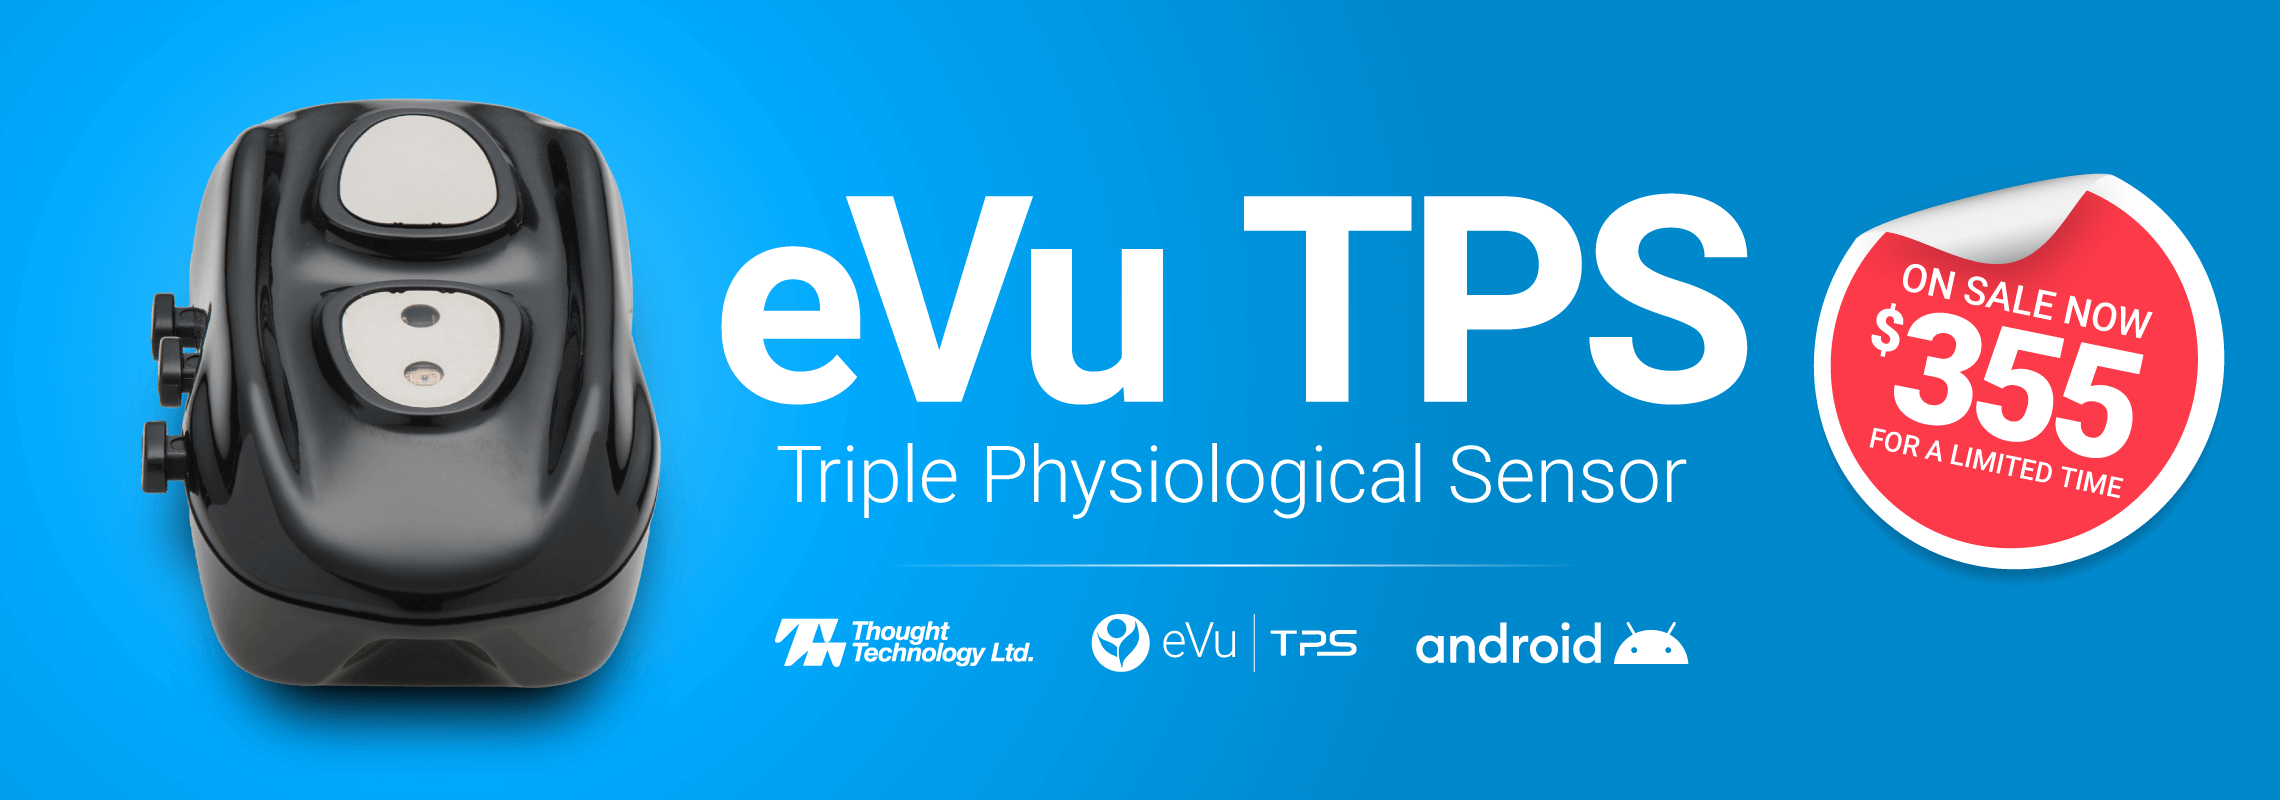 eVu TPS $355 for a limited time